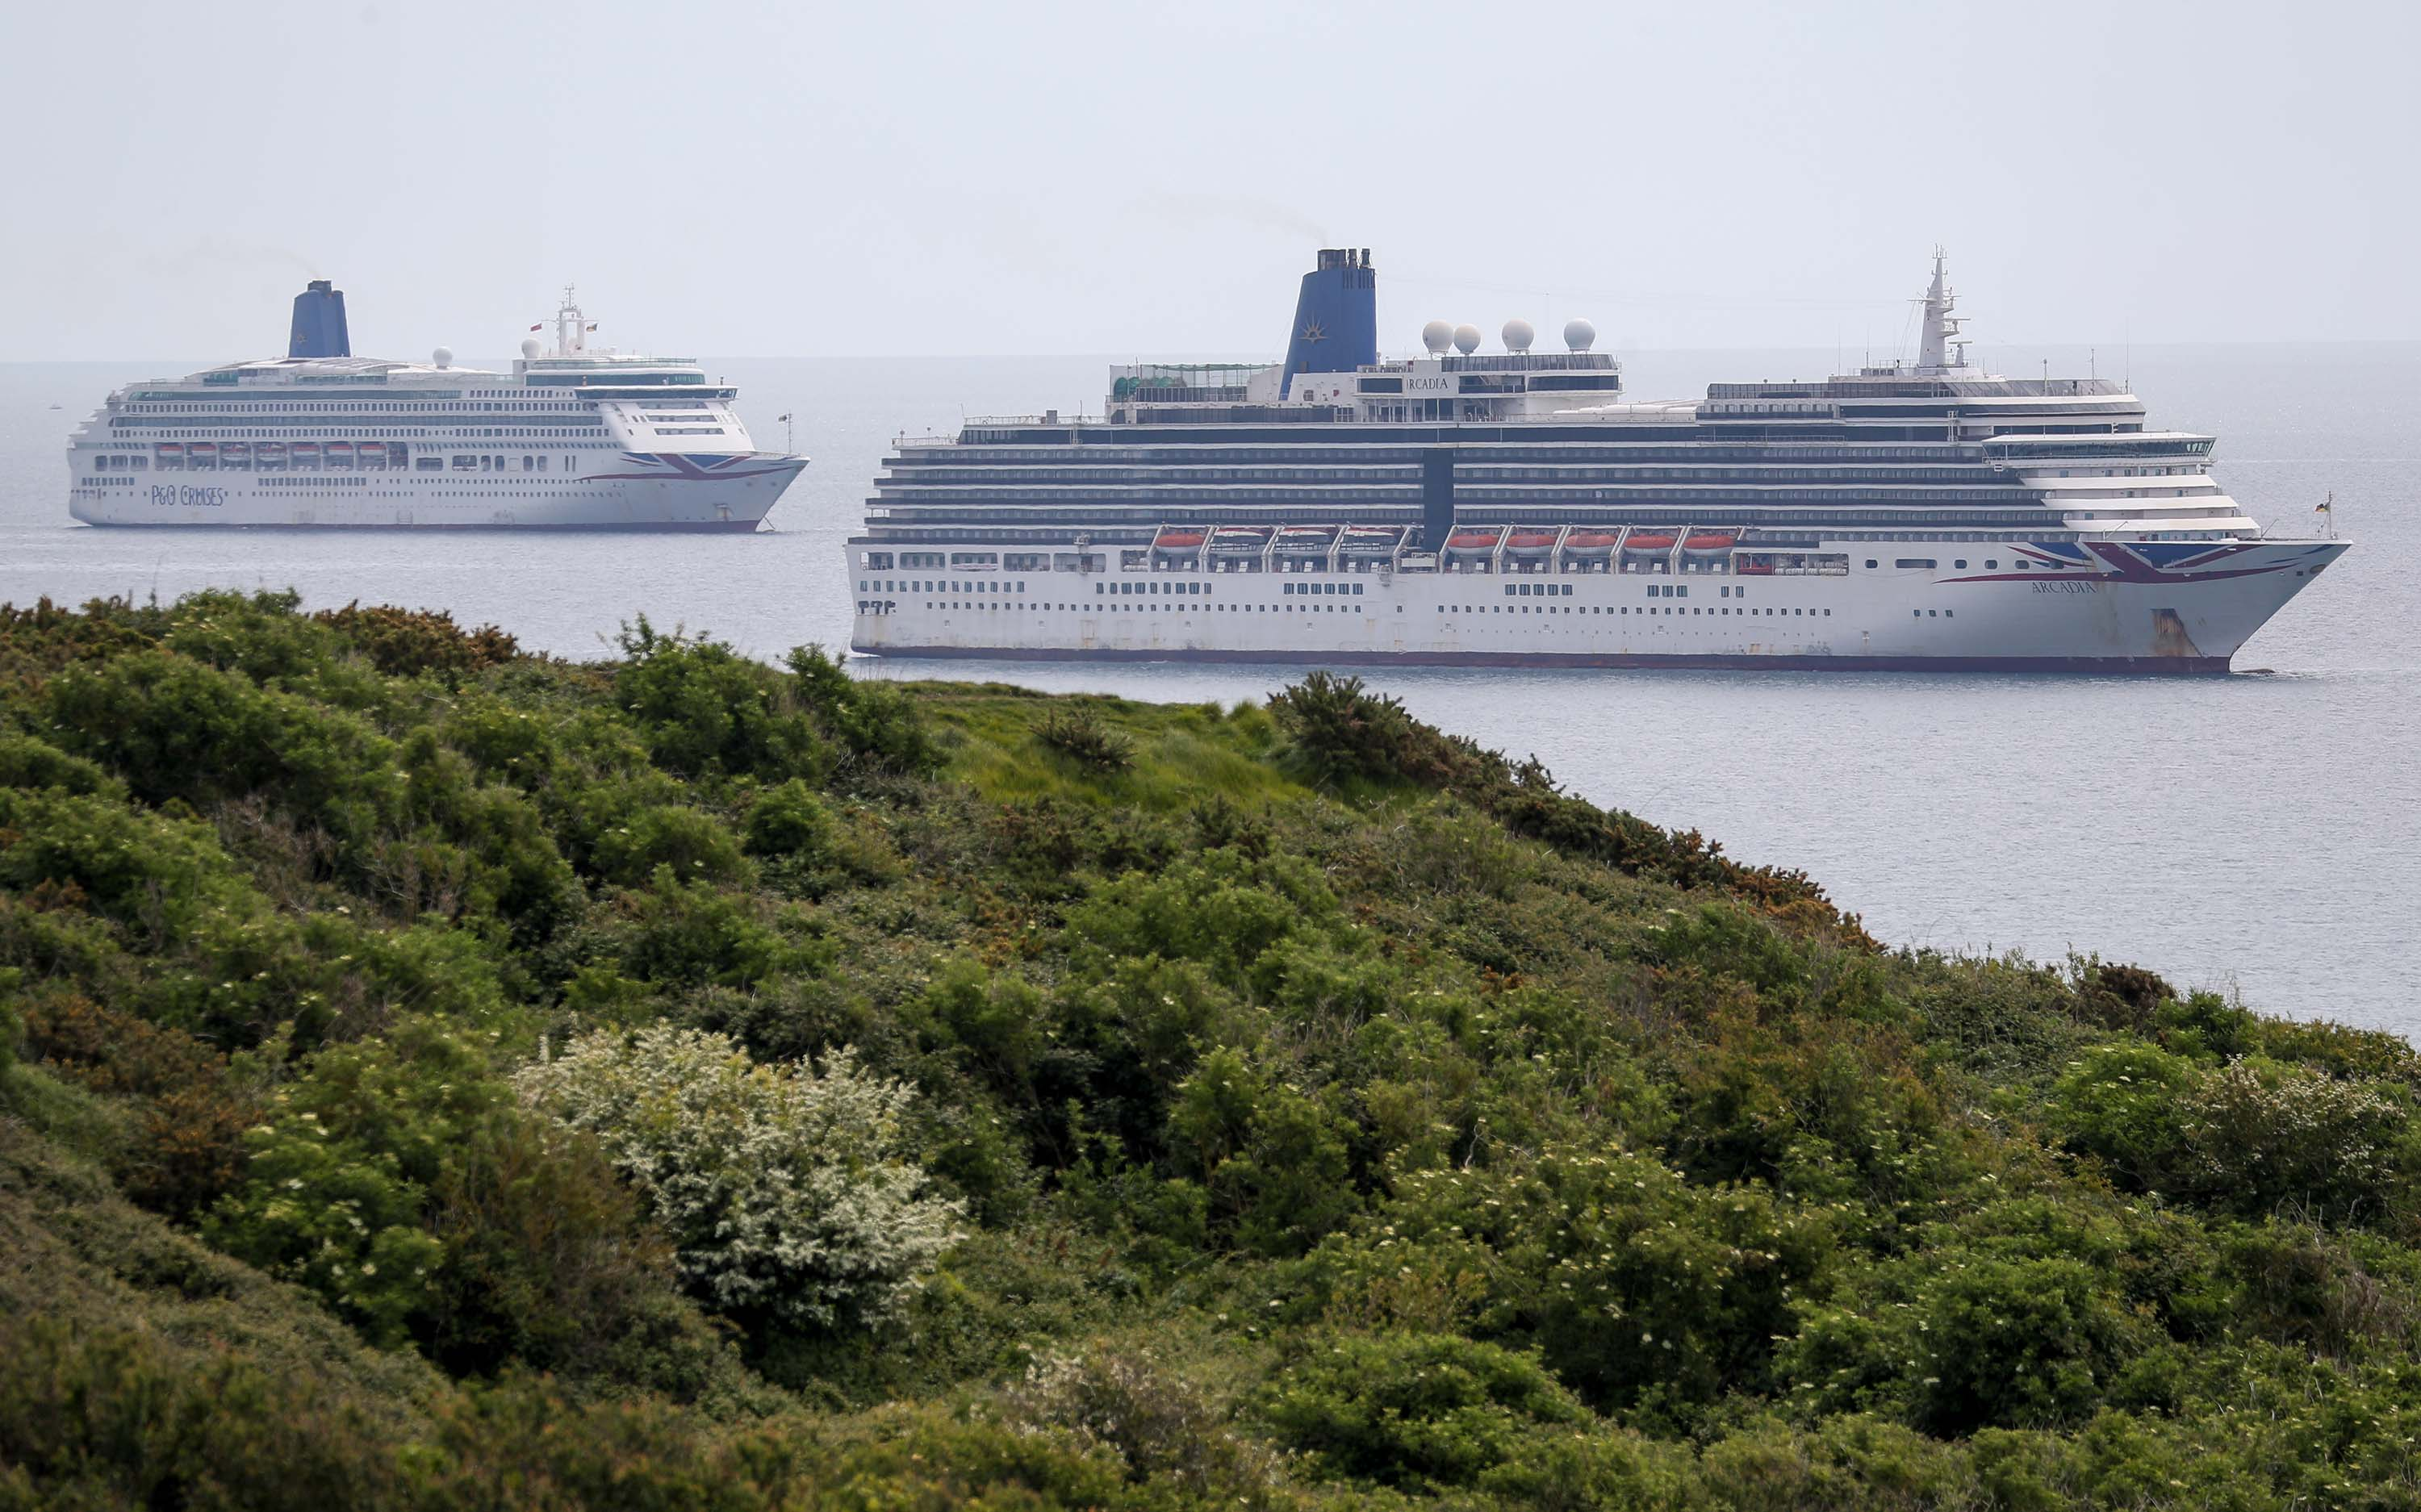 P&O cruise ships Aurora, left, and Arcadia are pictured at berth in Weymouth Bay, England, on May 17.